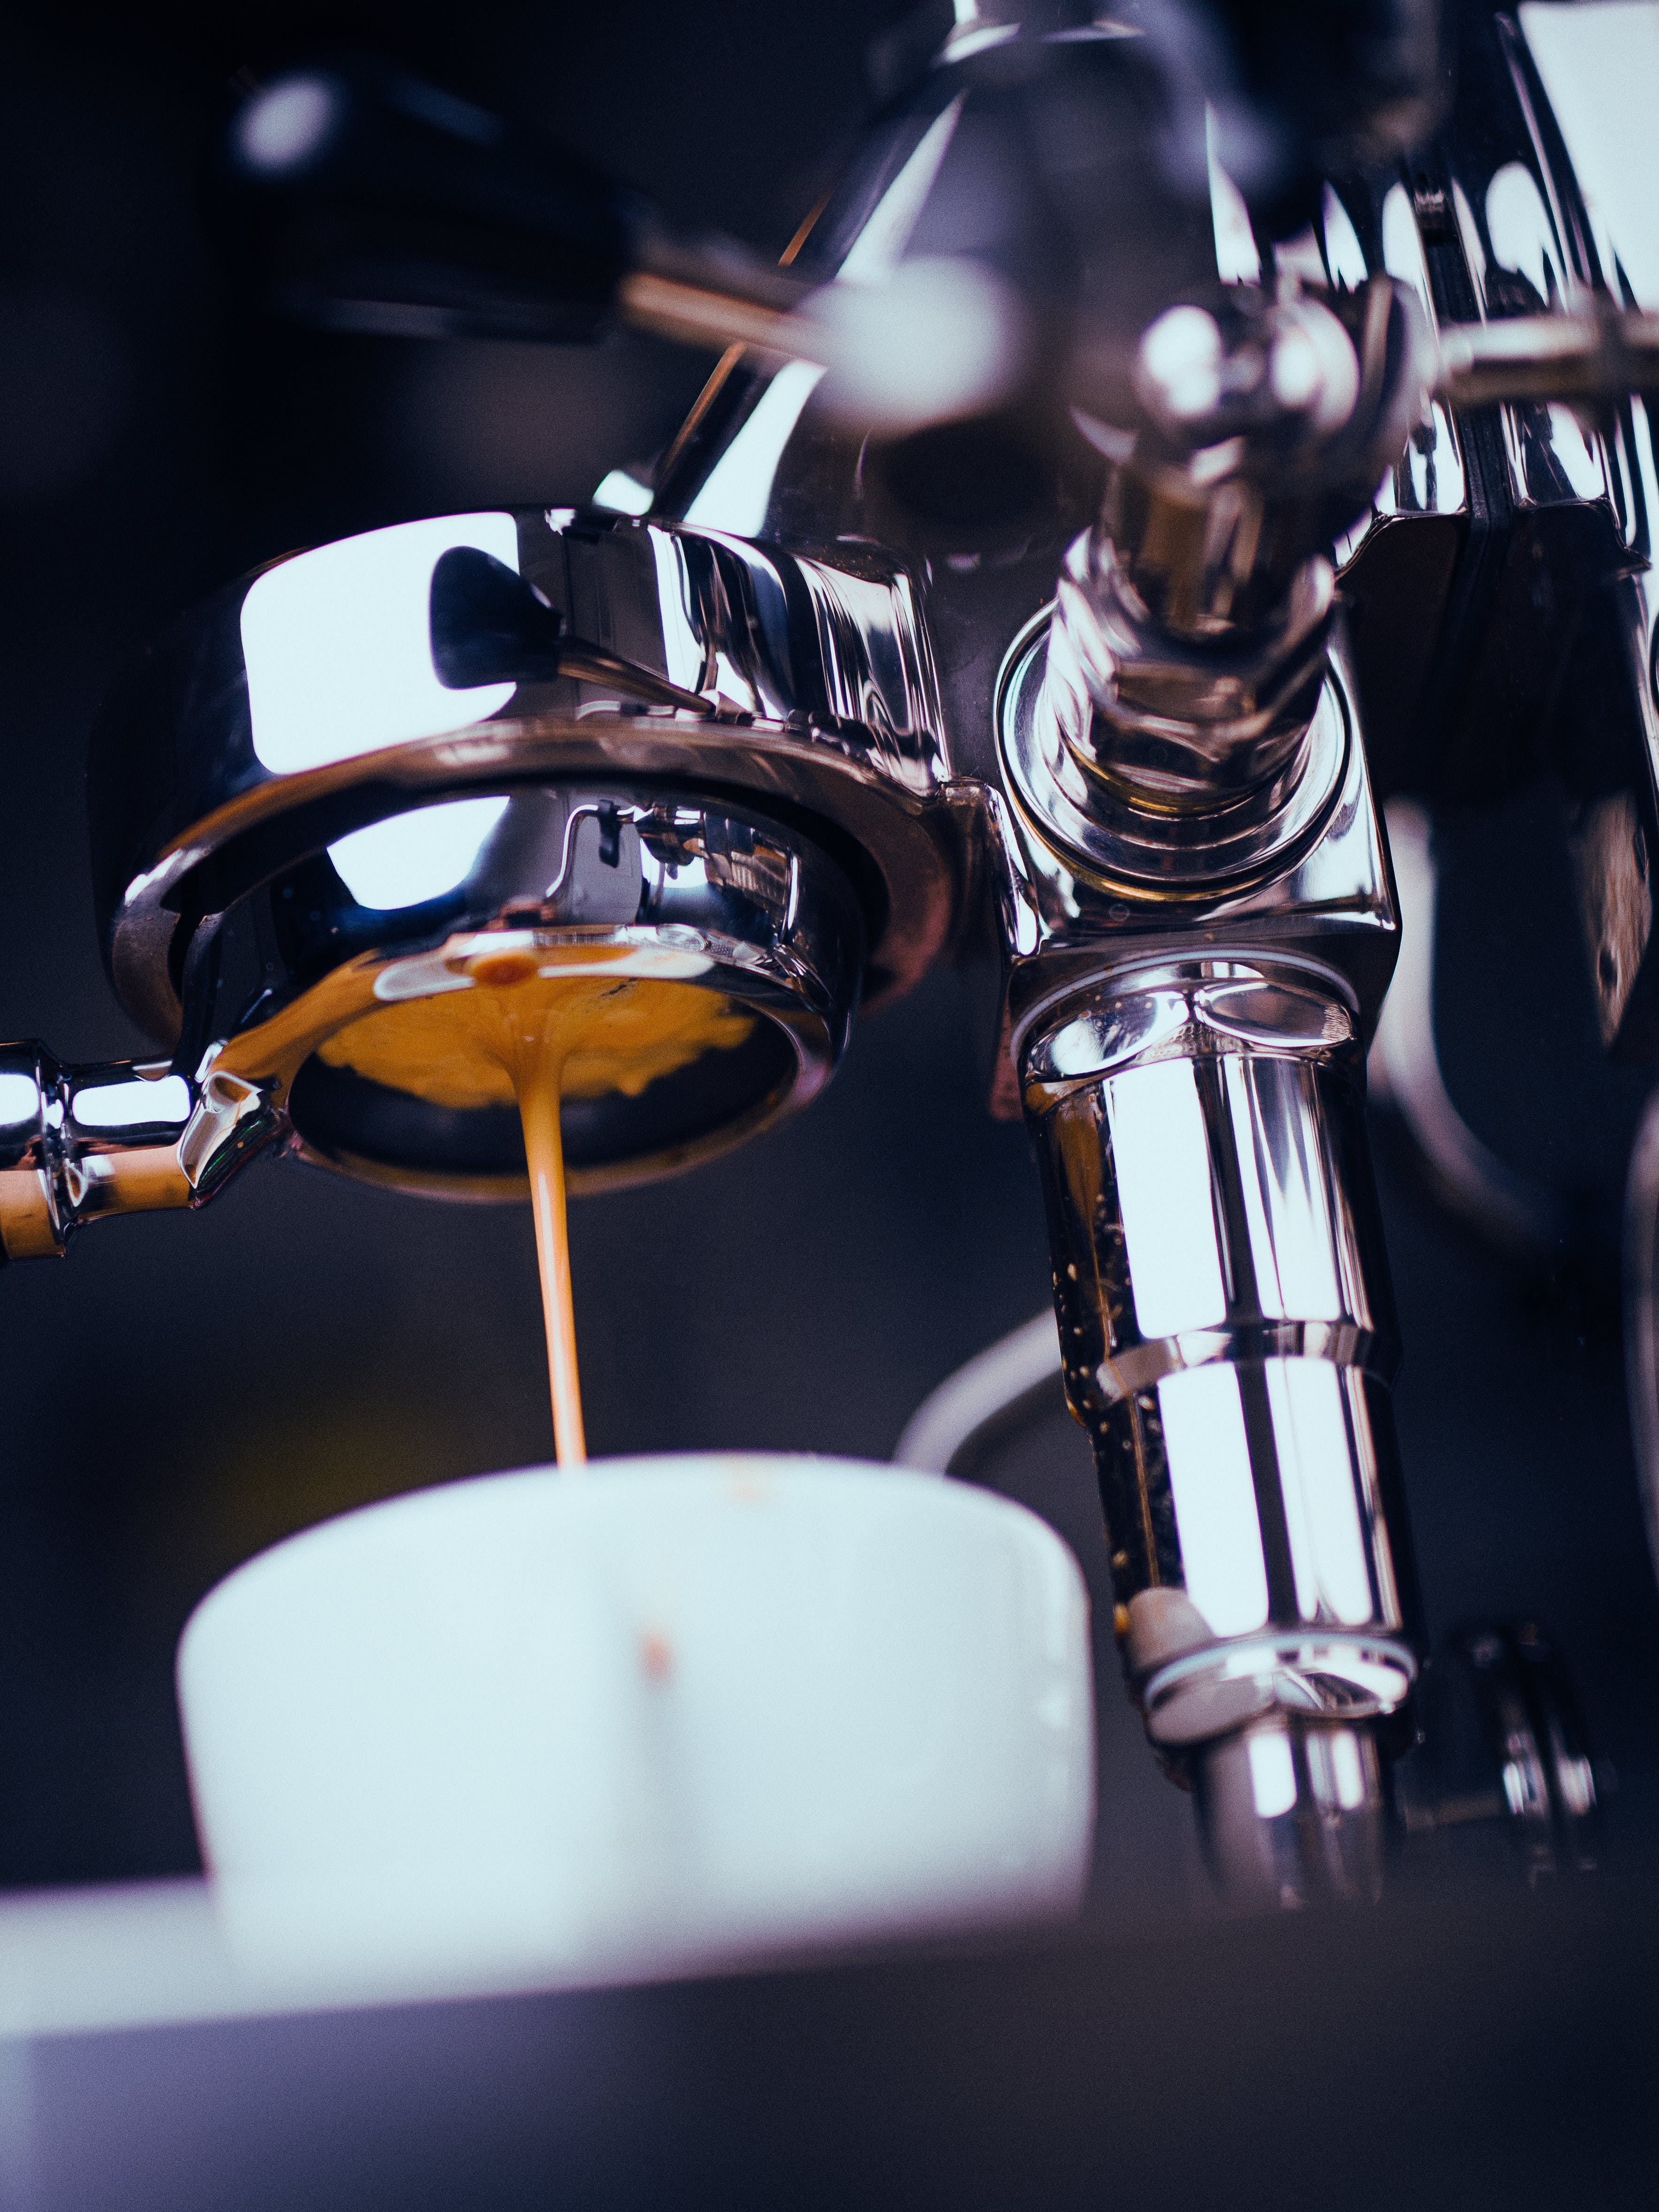 Espresso Machine Extracting Coffee and Dripping in White Cup